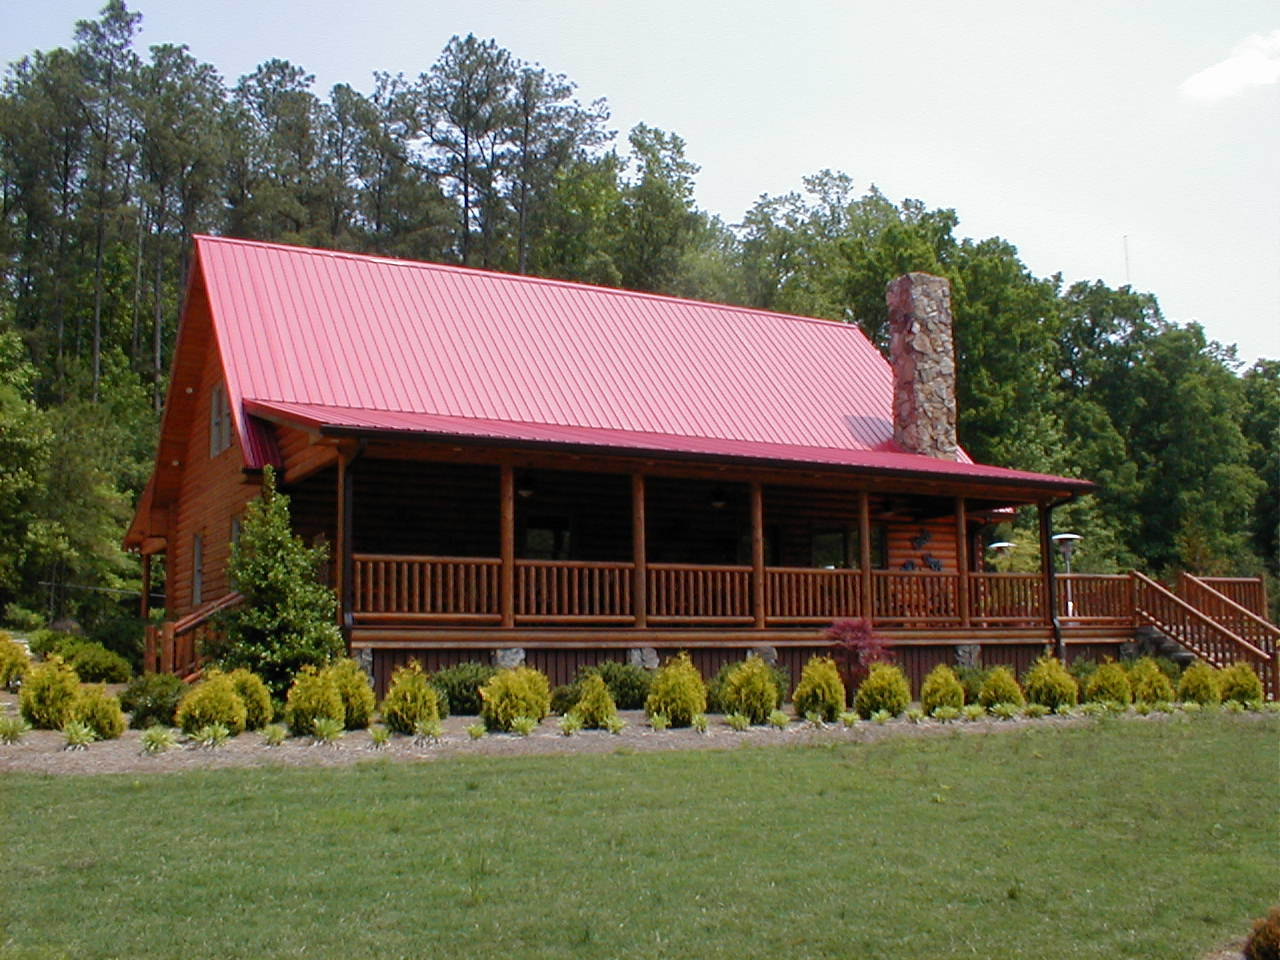 Marvelous photograph of Cabin Size: 3 Bedroom 2 Bath – 2 528 heated square feet with #A02B51 color and 1280x960 pixels